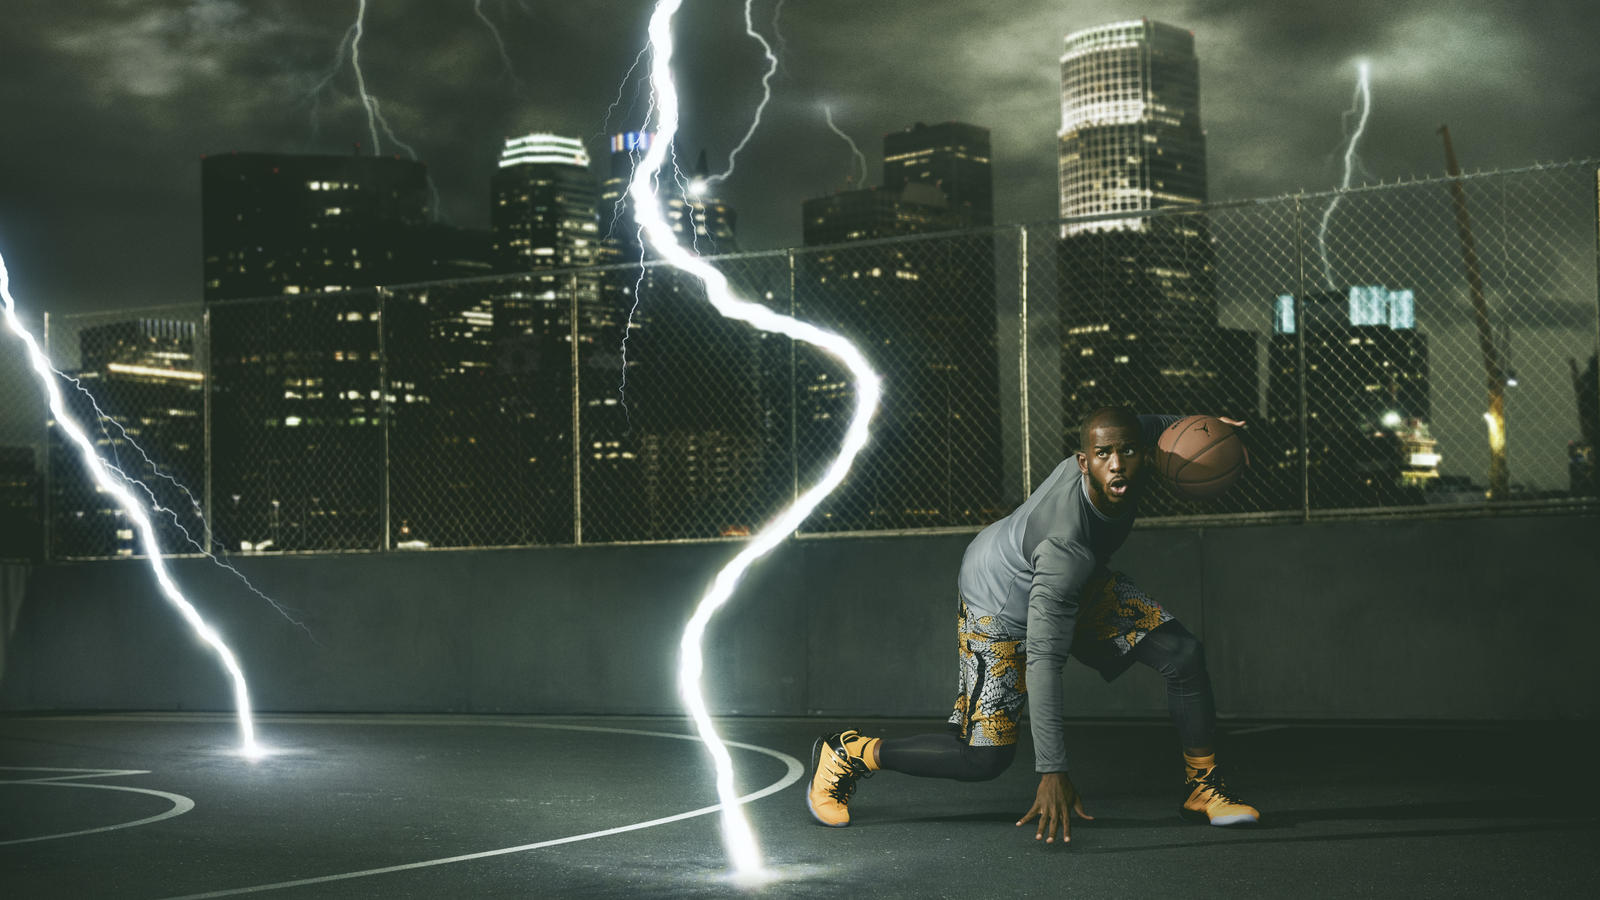 Chris Paul in the Jordan CP3.IX Yellow Dragon